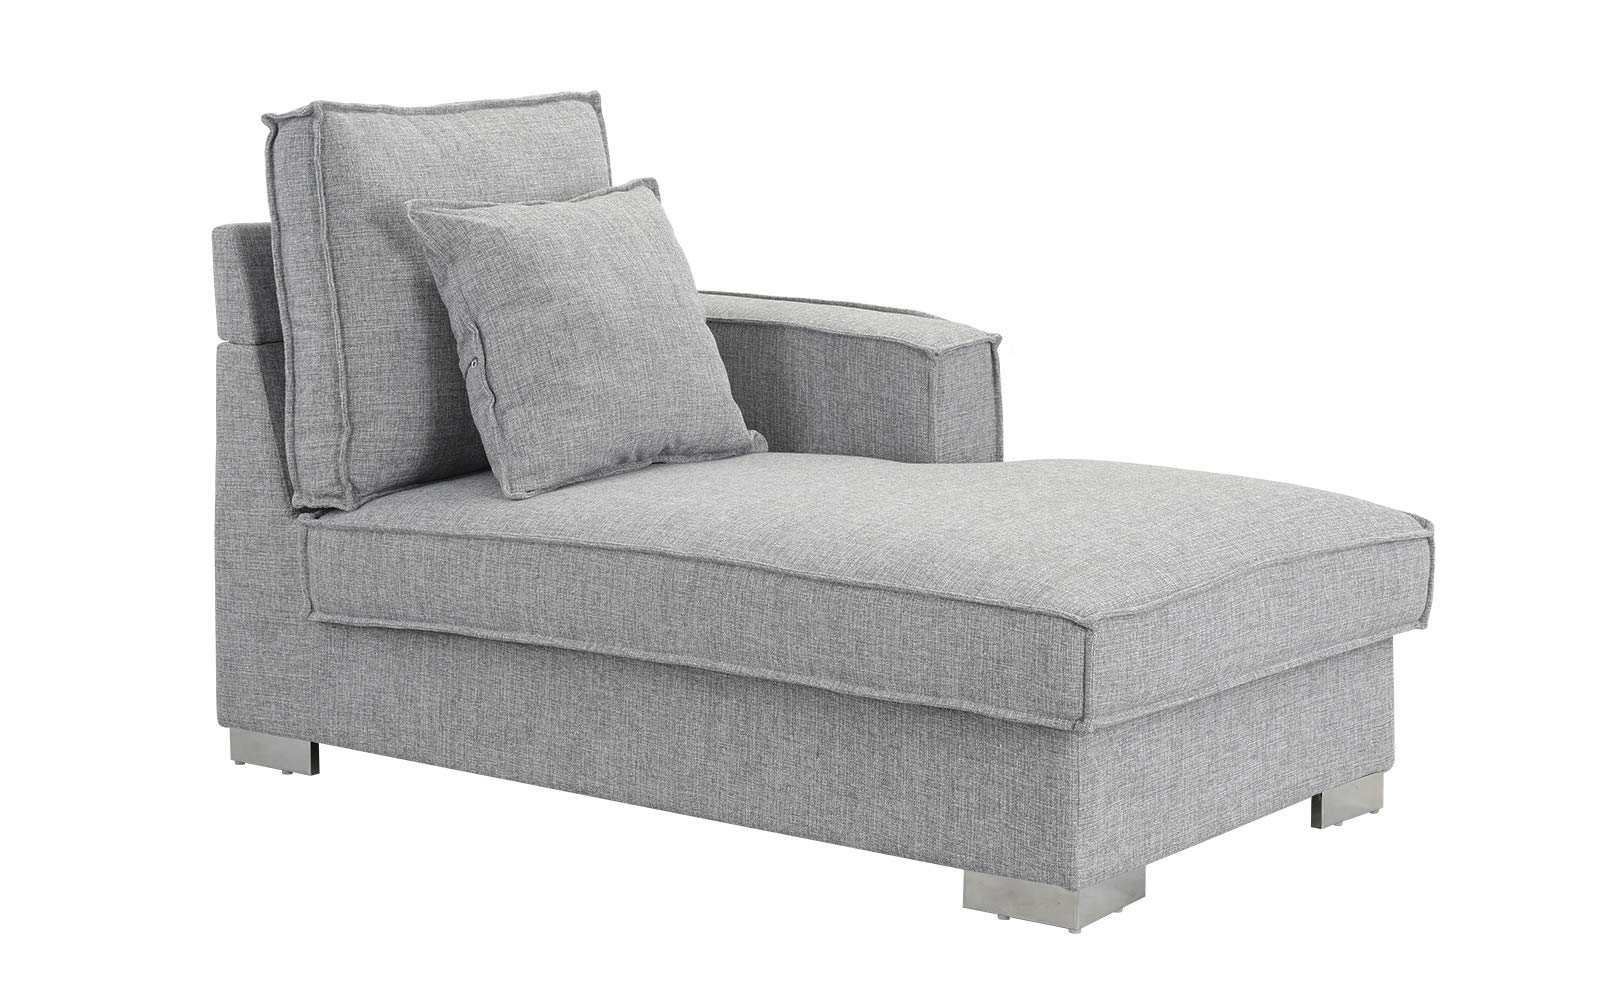 Classic Living Room Linen Fabric Chaise Lounge (Light Grey) by Casa Andrea Milano